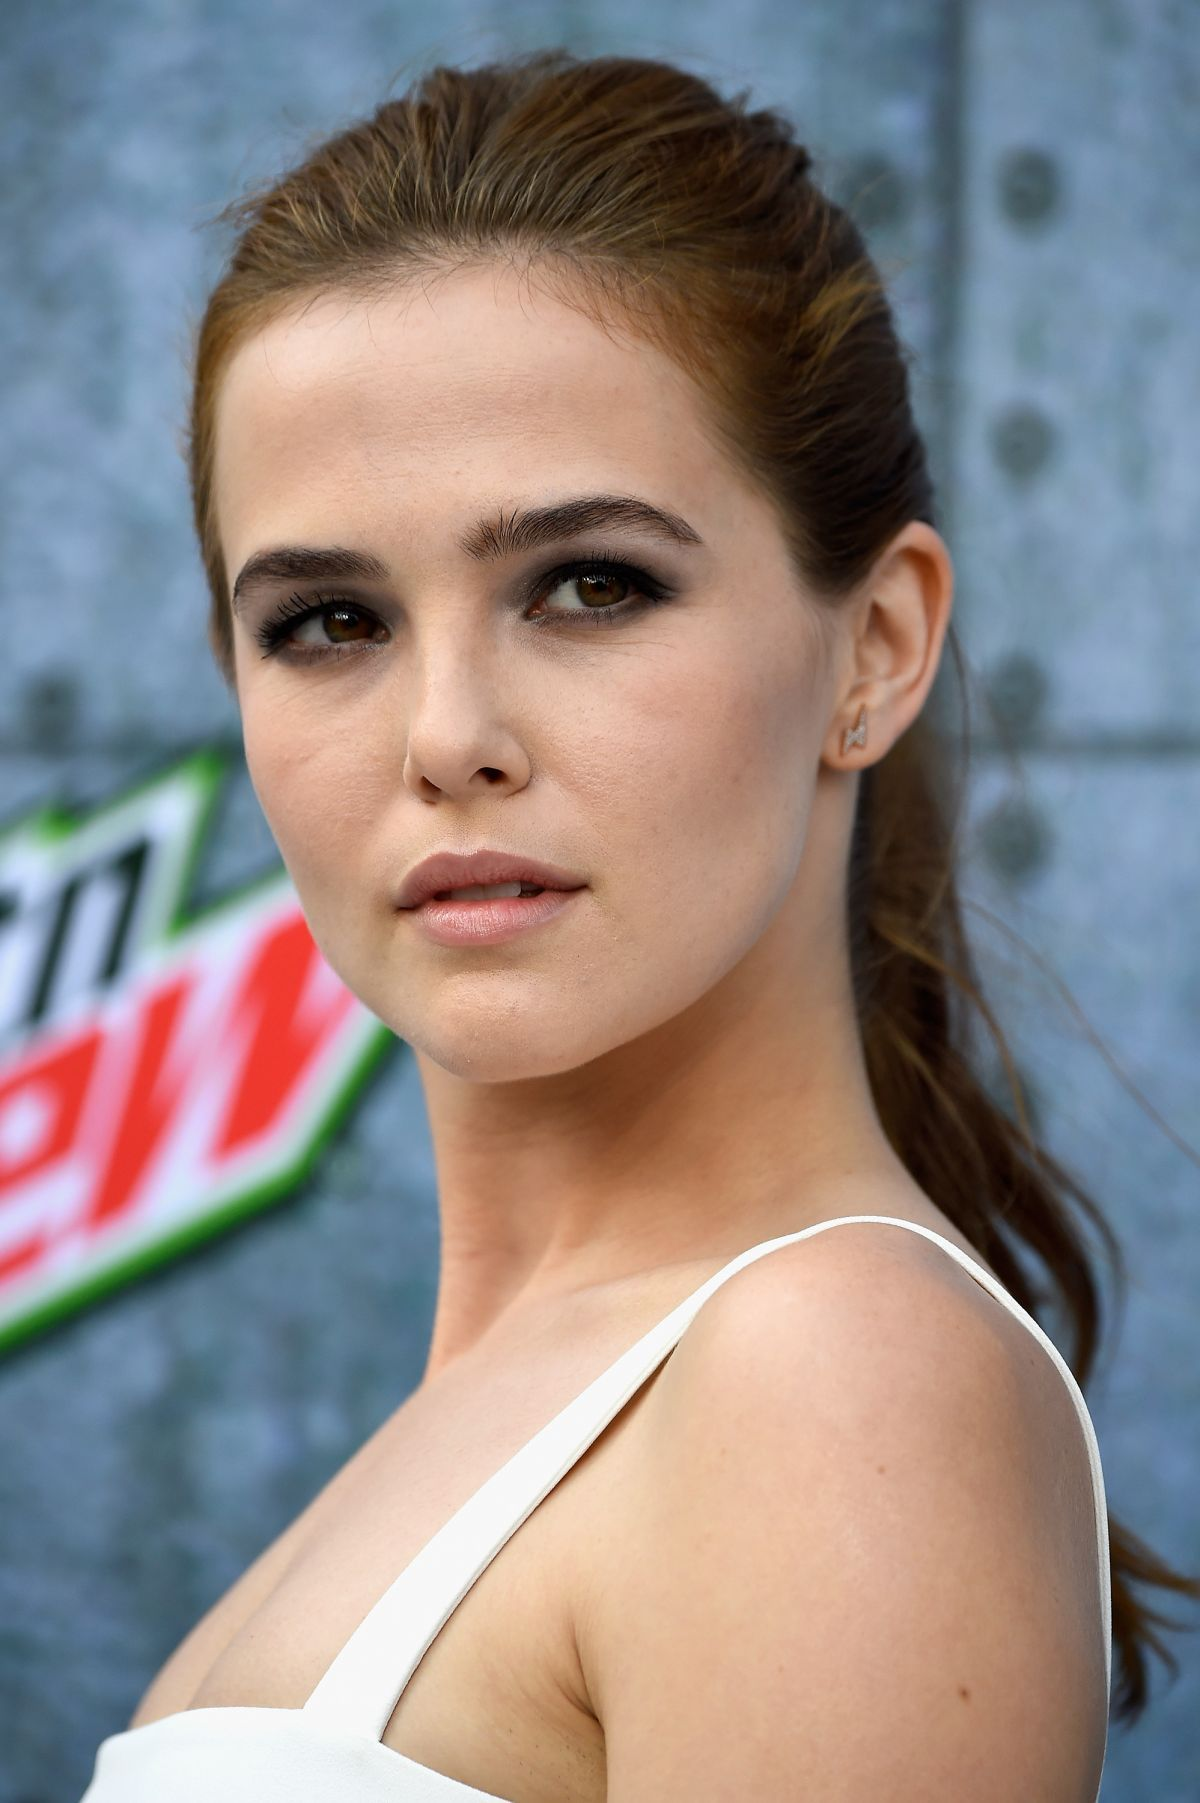 zoey deutch iconszoey deutch gif, zoey deutch tumblr, zoey deutch vk, zoey deutch and avan jogia, zoey deutch gif hunt, zoey deutch photoshoot, zoey deutch png, zoey deutch фото, zoey deutch gallery, zoey deutch site, zoey deutch screencaps, zoey deutch films, zoey deutch gif tumblr, zoey deutch вк, zoey deutch wallpaper, zoey deutch wikipedia, zoey deutch icons, zoey deutch фильмы, zoey deutch source, zoey deutch interview